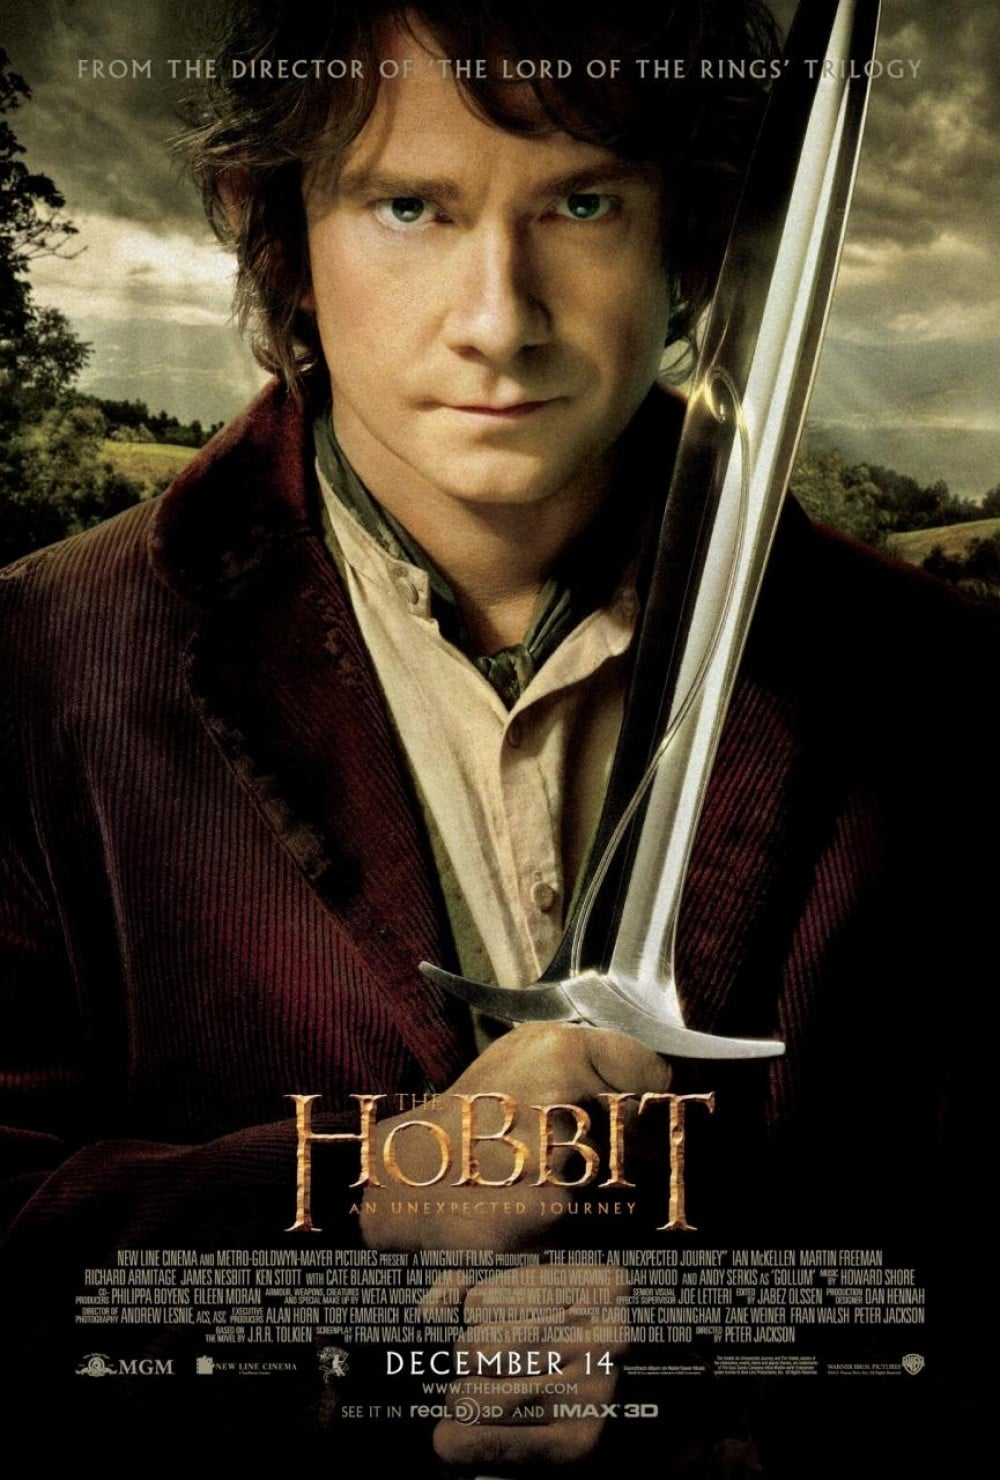 the hobbit an unexpected journey 2012 high quality HD printable wallpapers official poster bilbo baggins sword